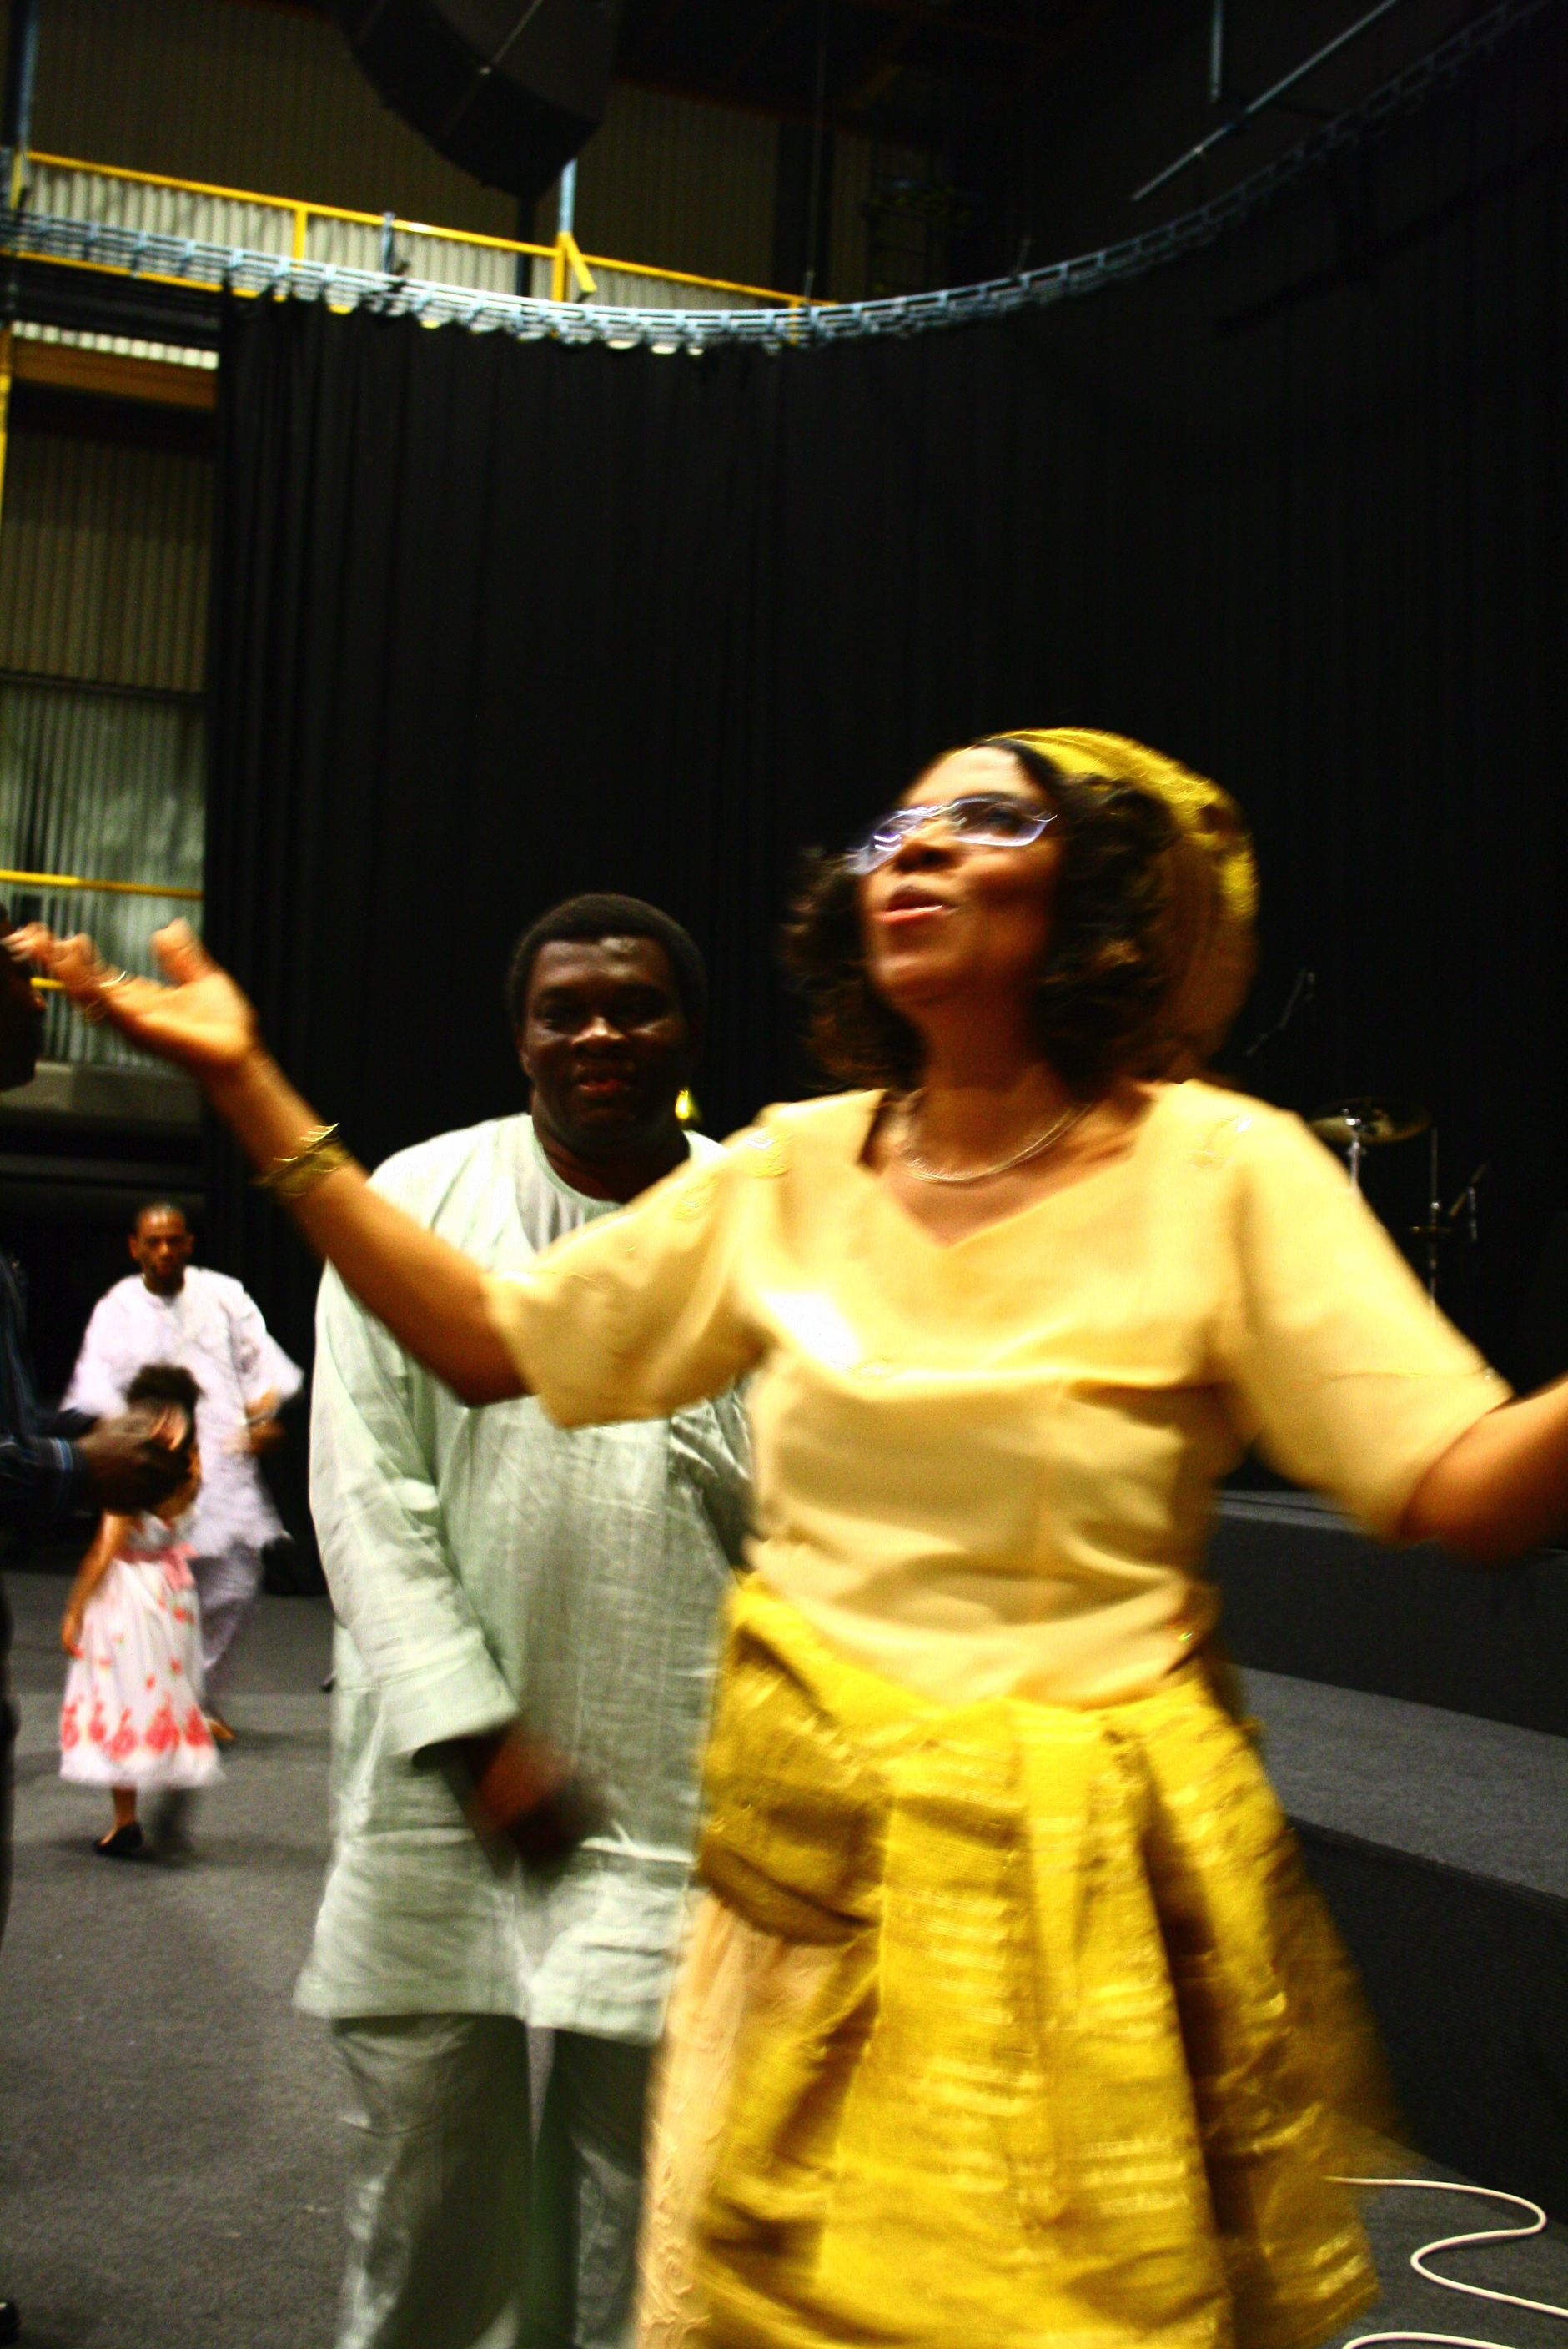 Ngozi Okike in Worship Mode